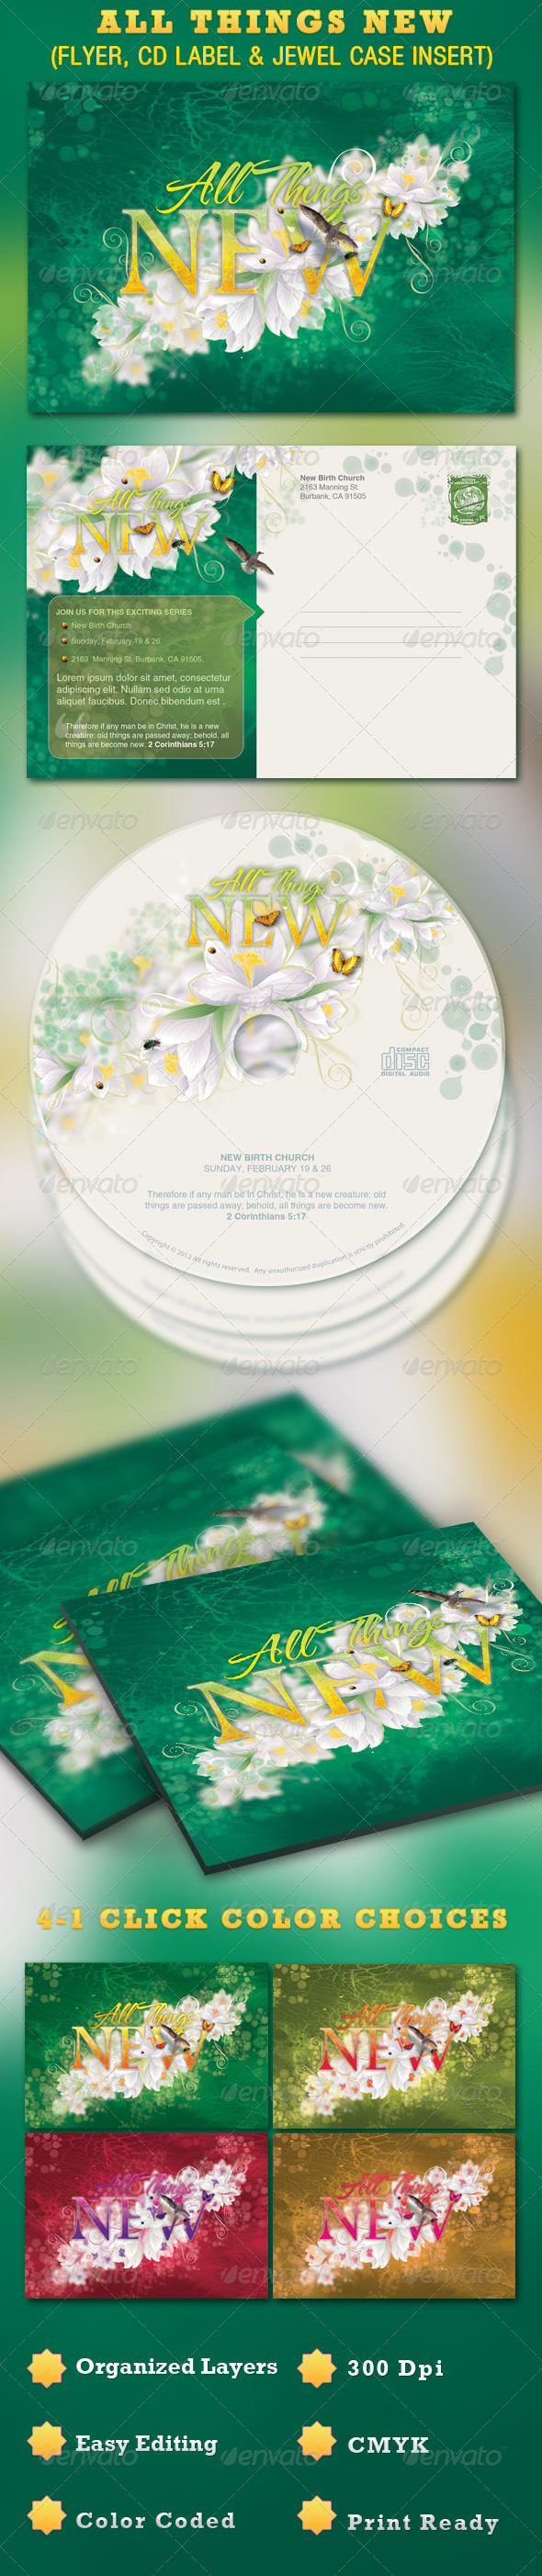 GraphicRiver All Things New Church Postcard and CD Template 1556144